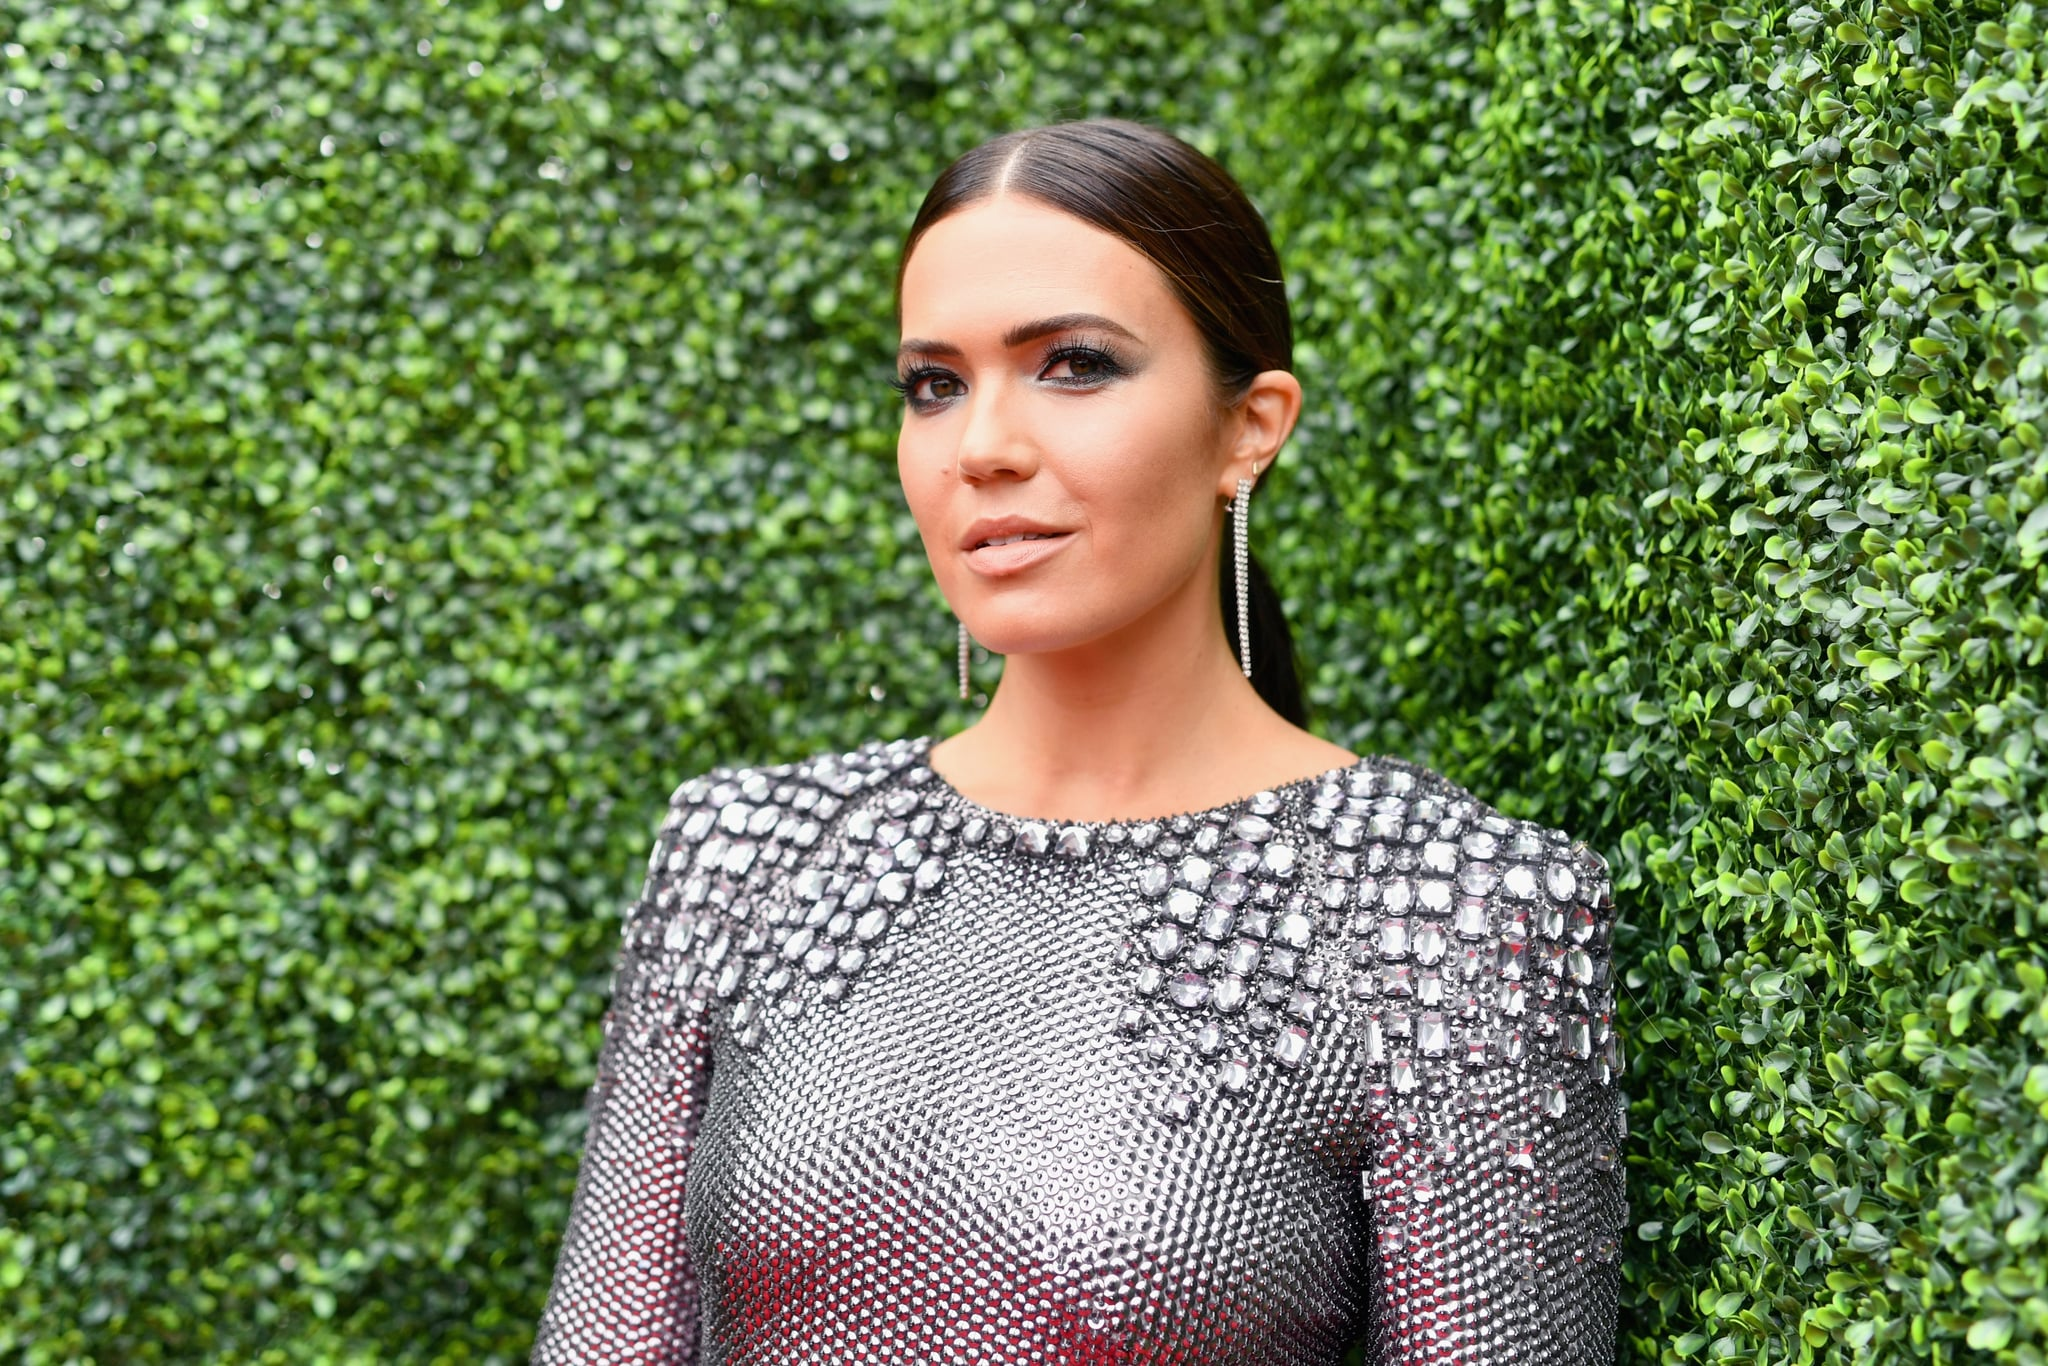 SANTA MONICA, CA - JUNE 16:  Actor/singer Mandy Moore attends the 2018 MTV Movie And TV Awards at Barker Hangar on June 16, 2018 in Santa Monica, California.  (Photo by Emma McIntyre/Getty Images for MTV)